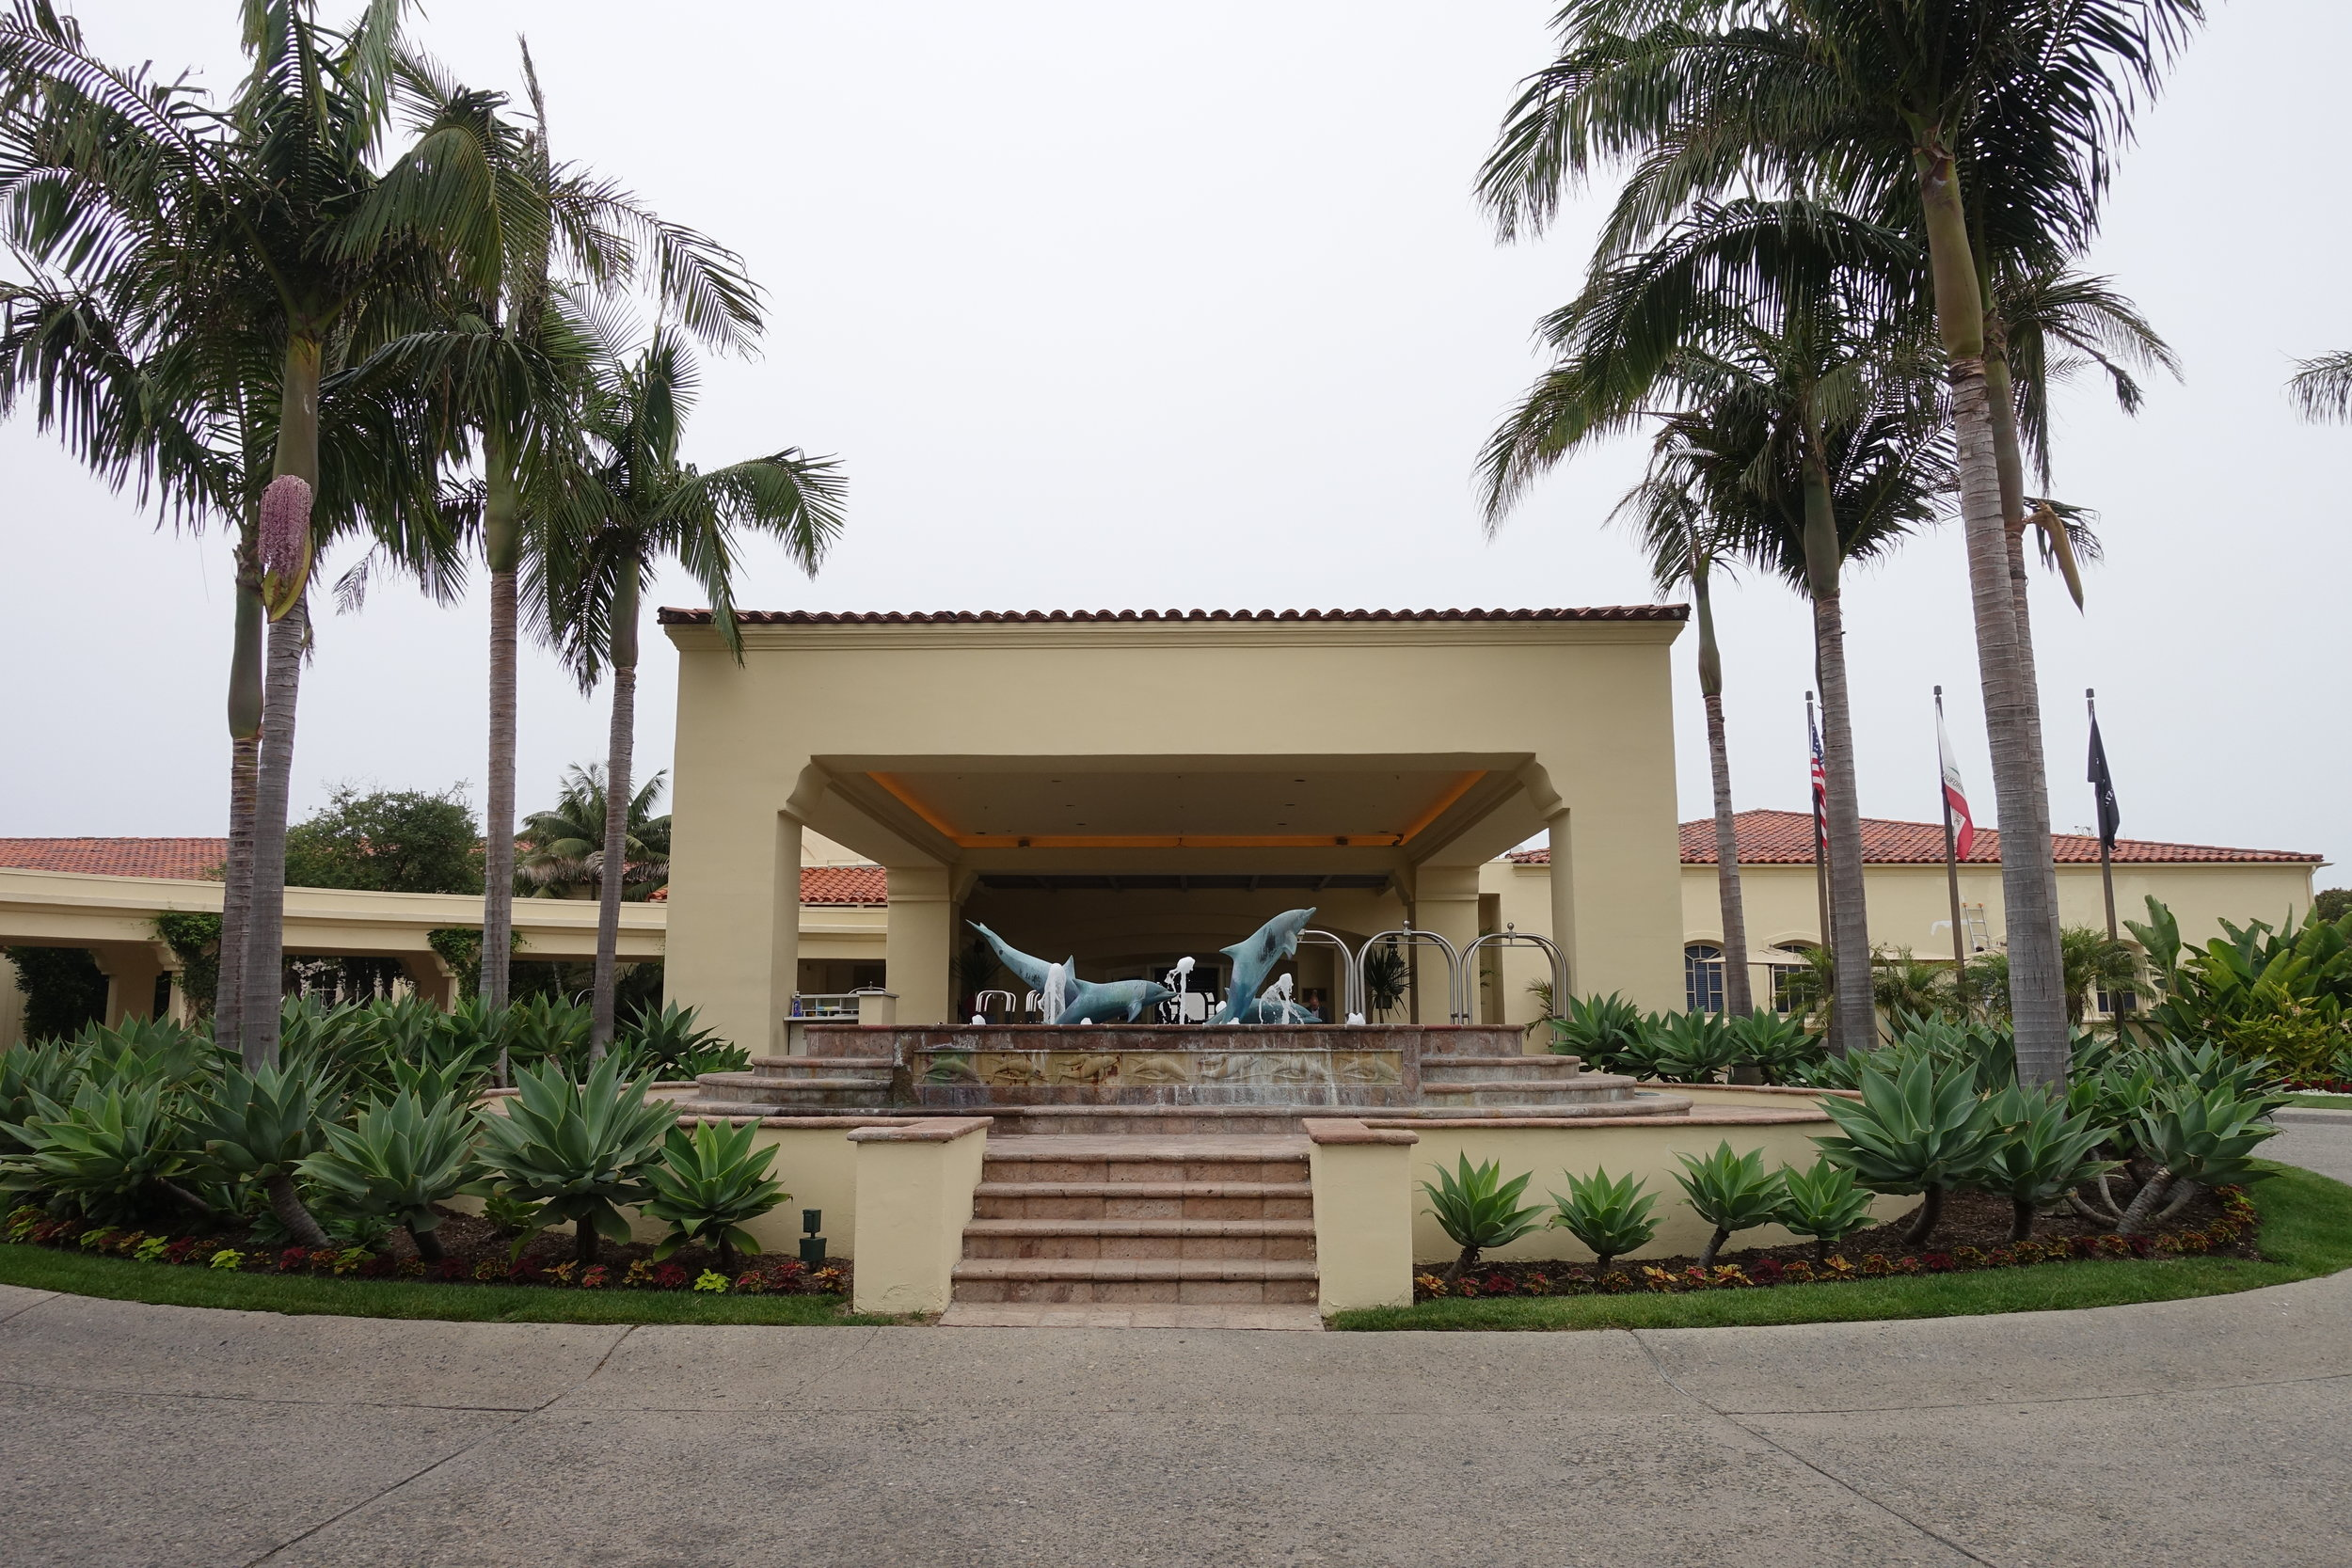 Entrance to Laguna Niguel